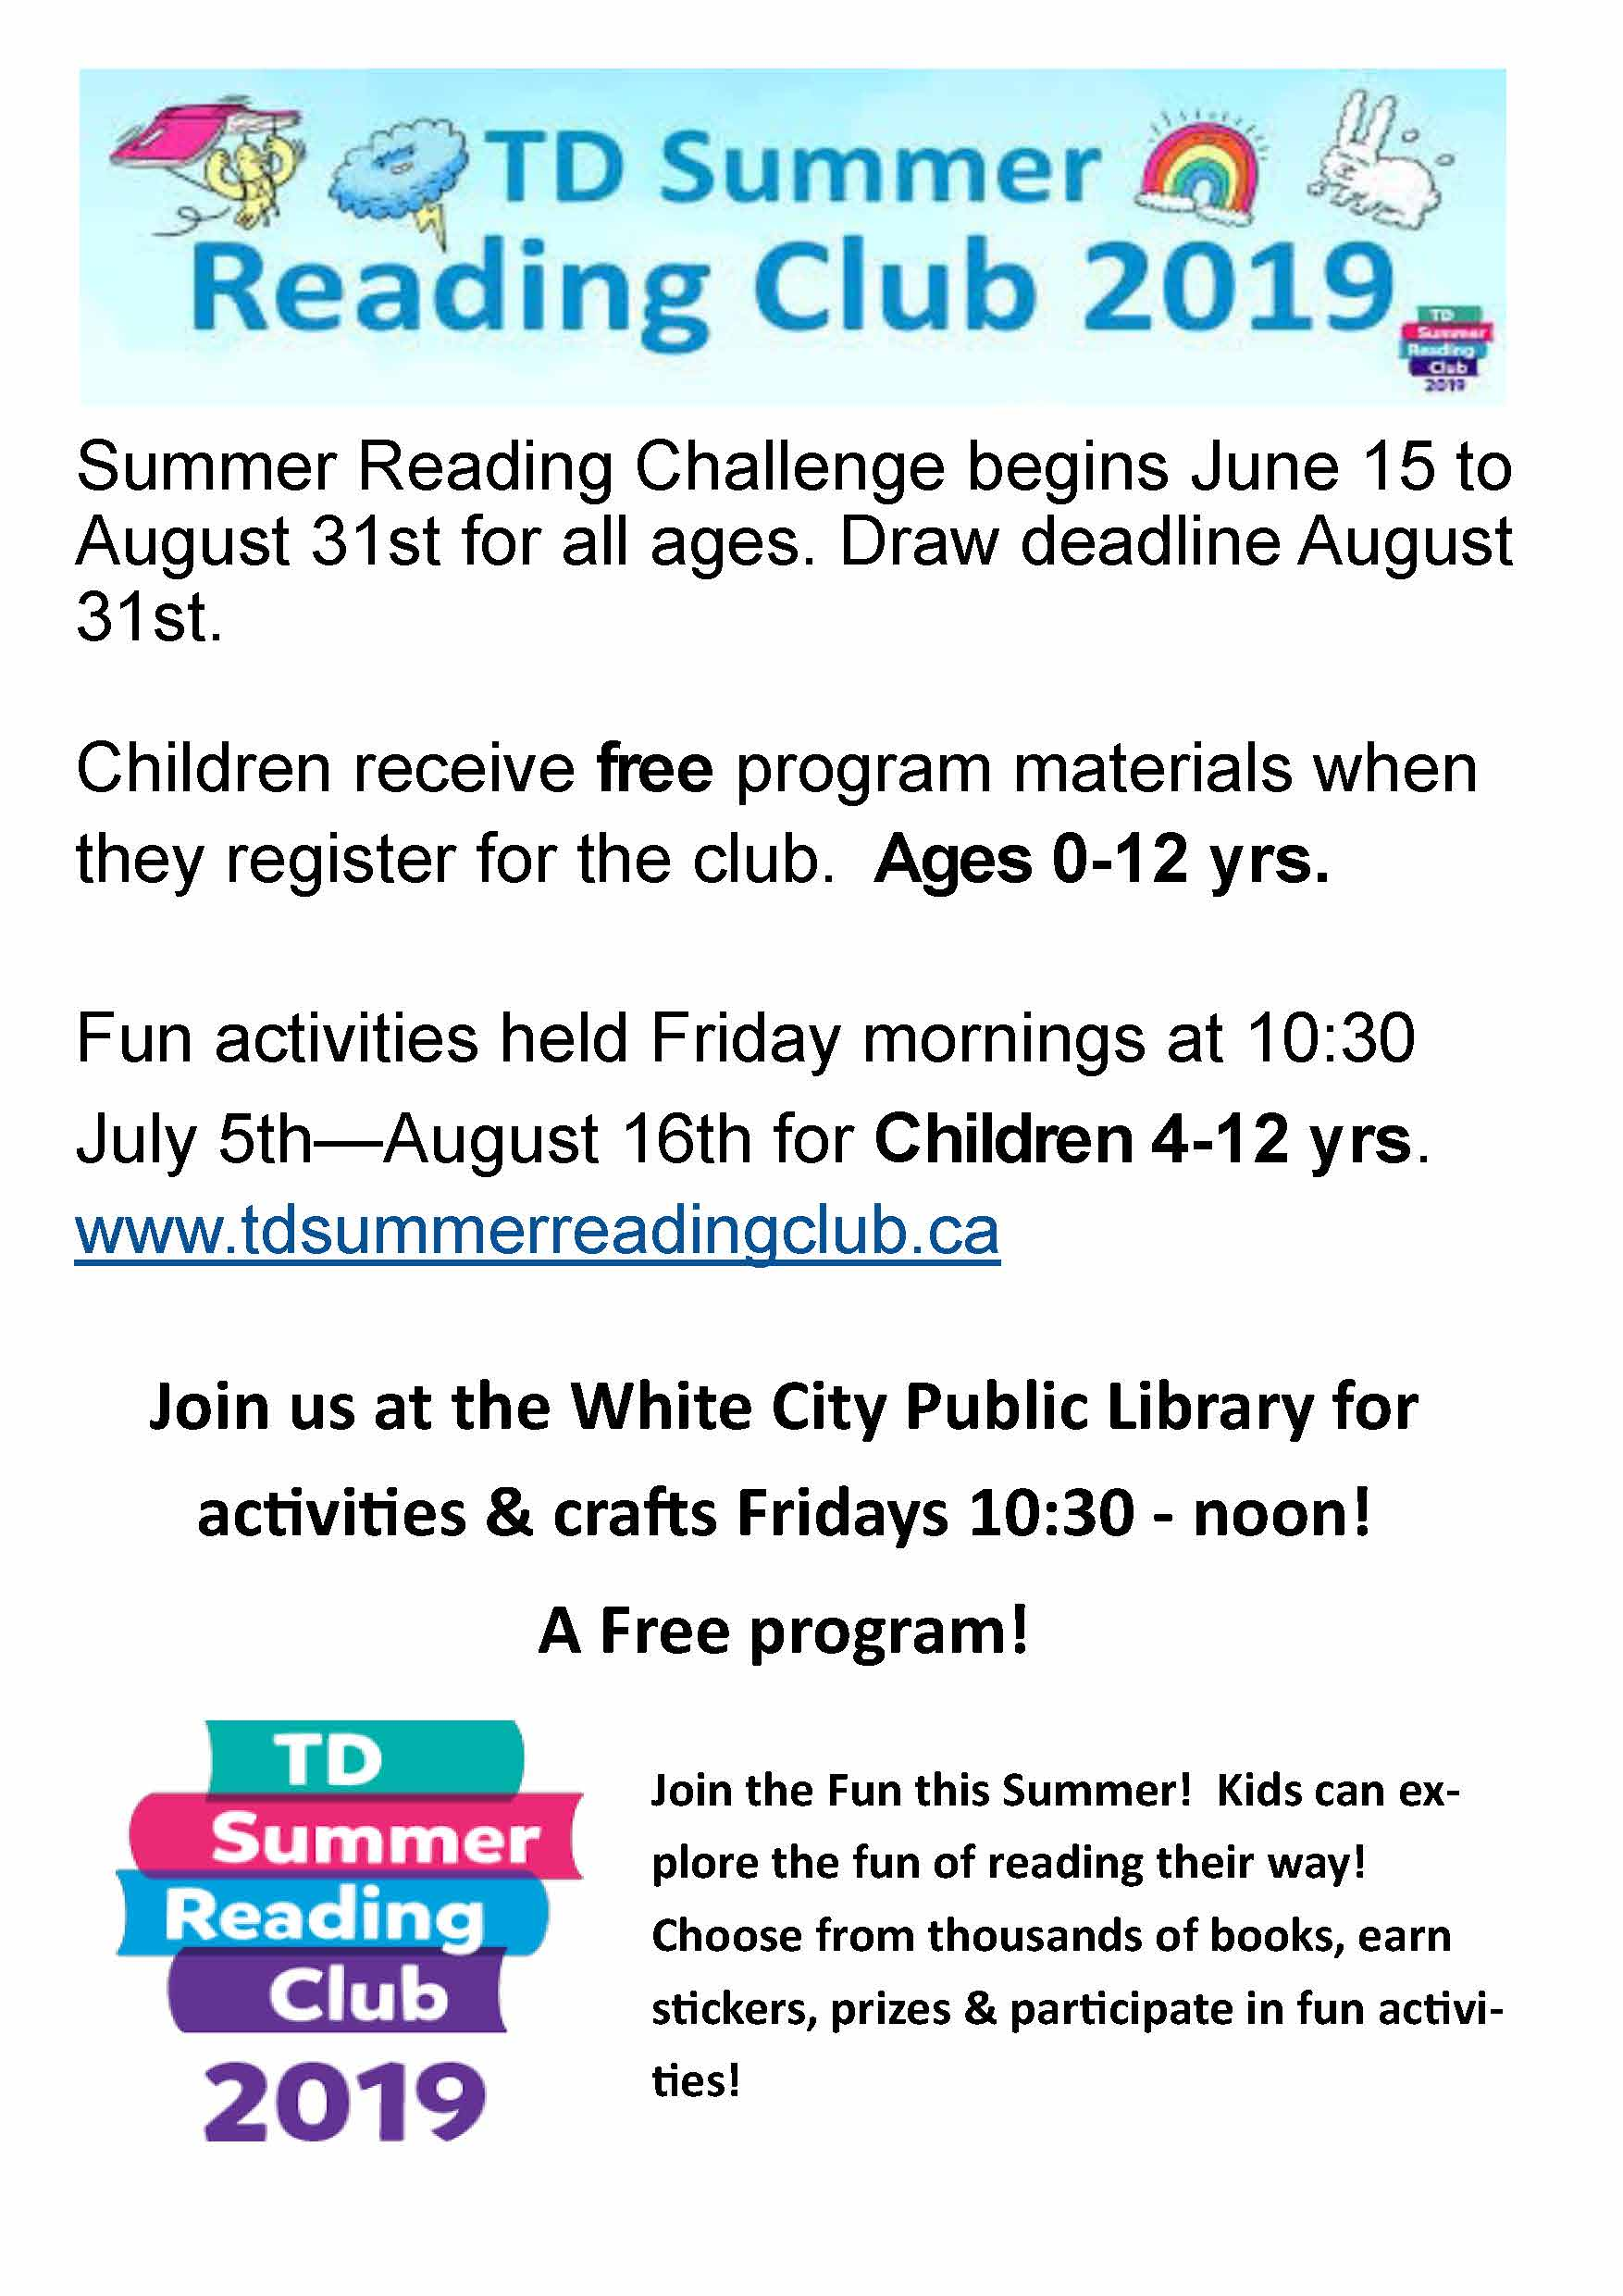 2019-07-19 Library: Summer Reading Club